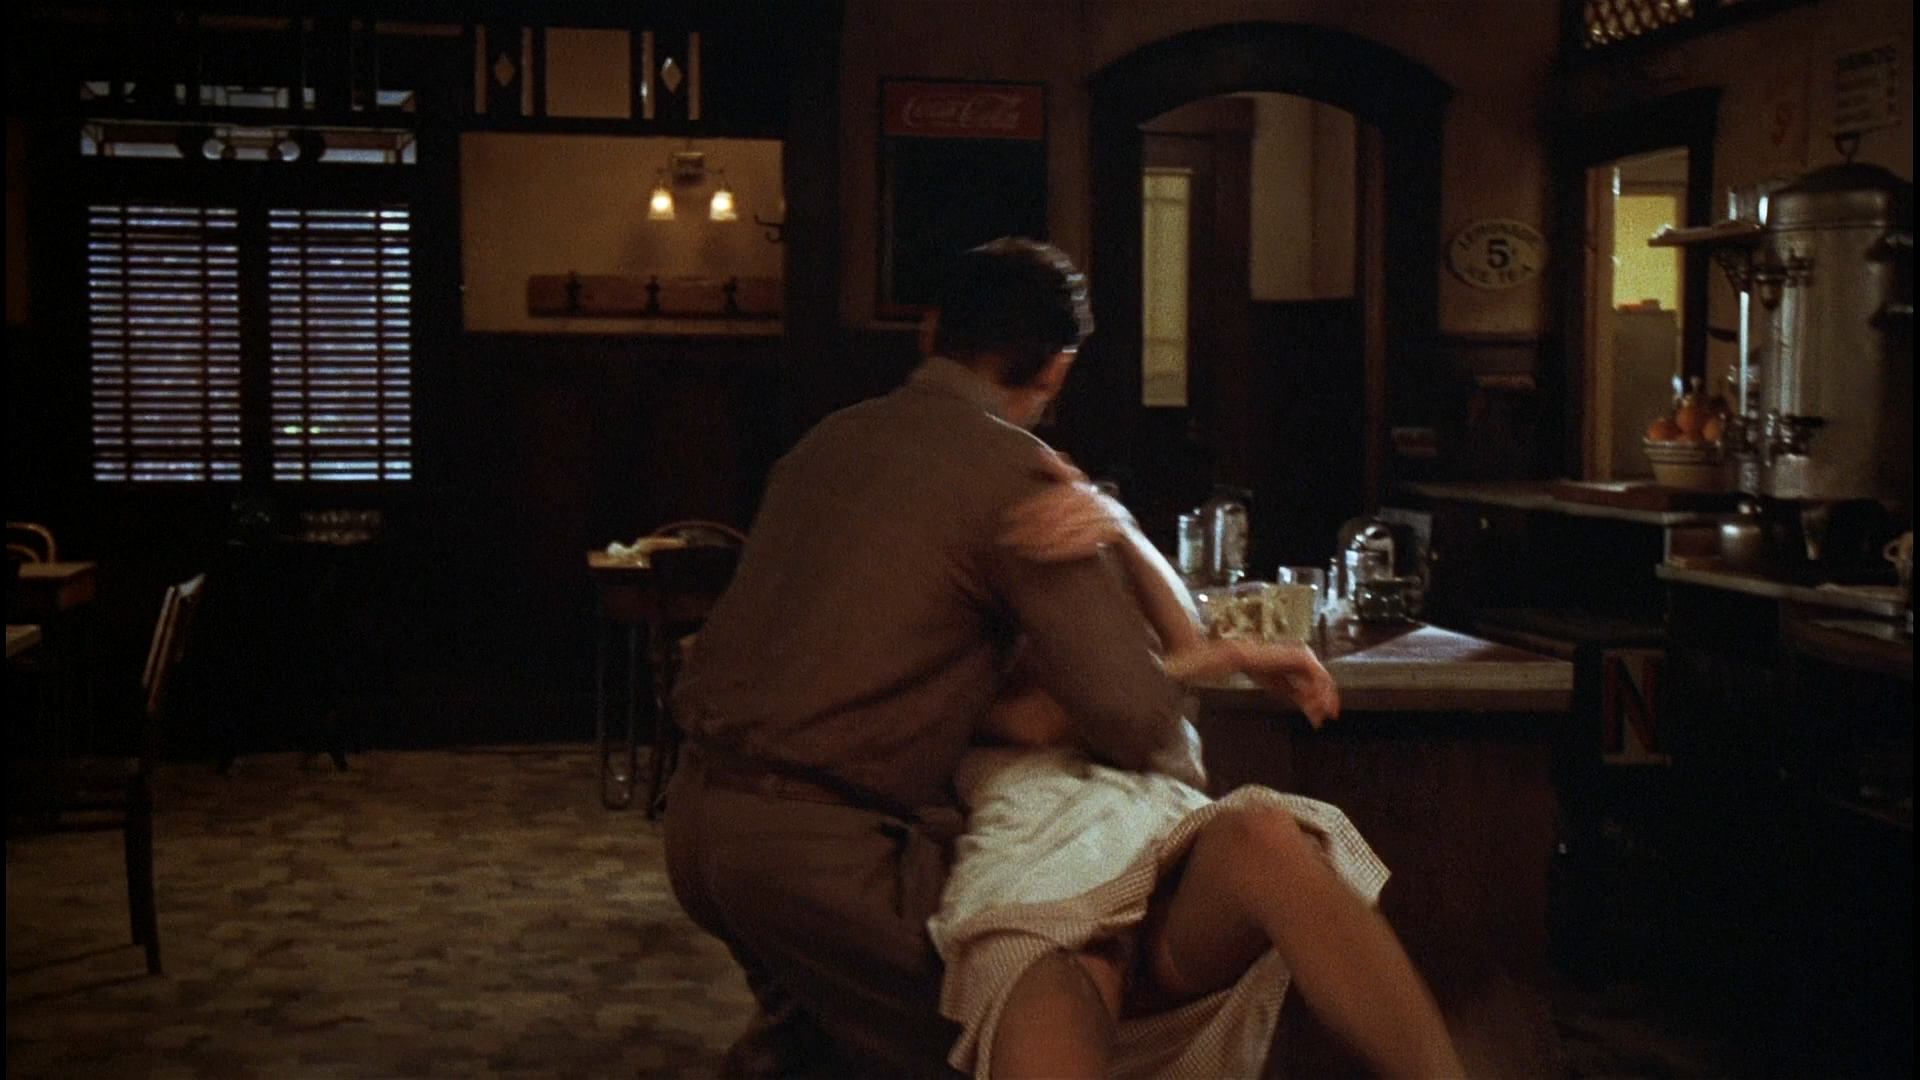 Anjelica Huston Nude - Naked Pics and Sex Scenes at